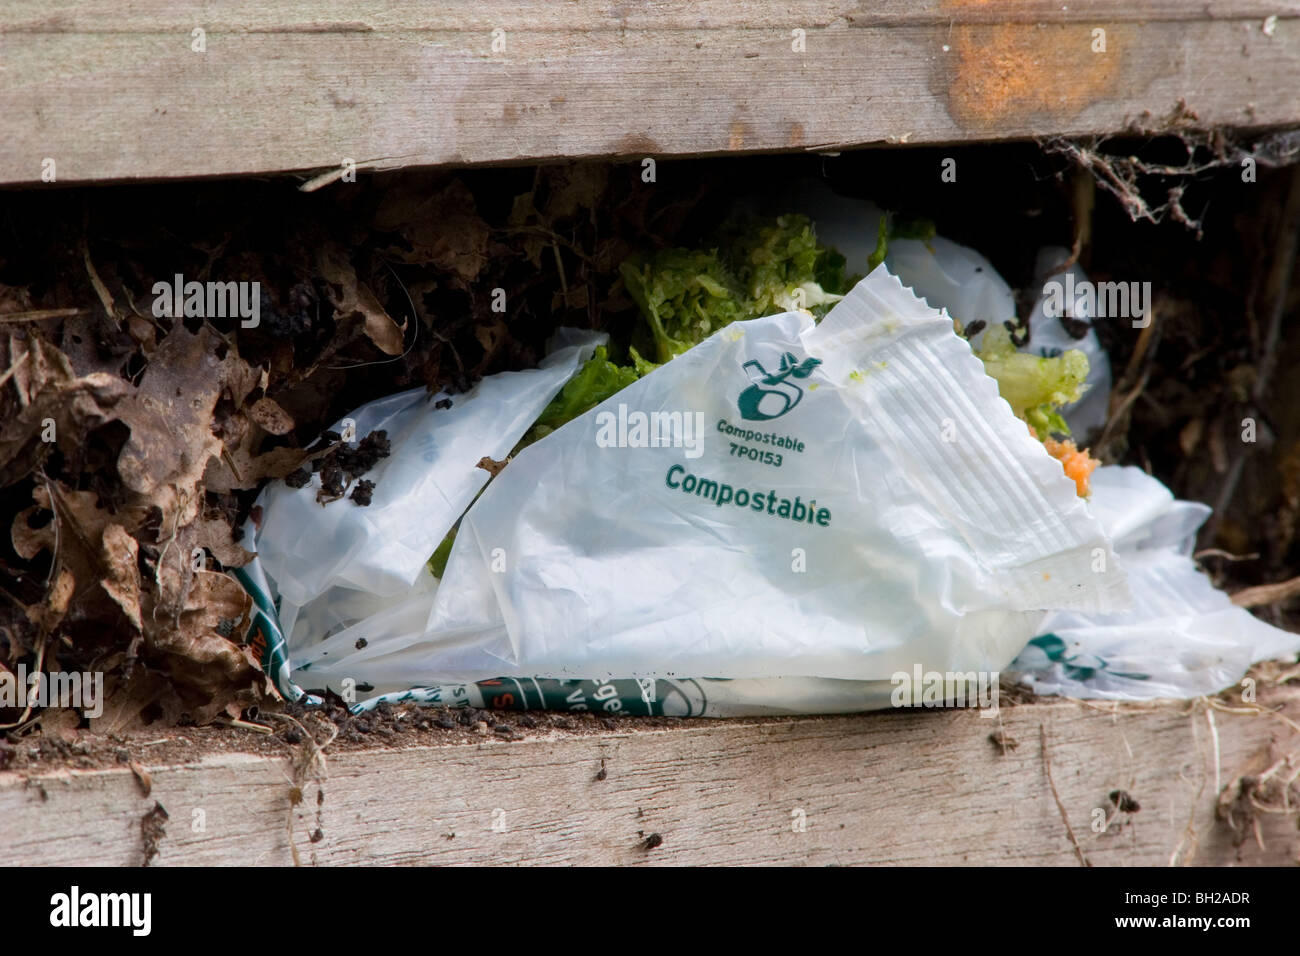 compostable plastic bag in compost heap - Stock Image